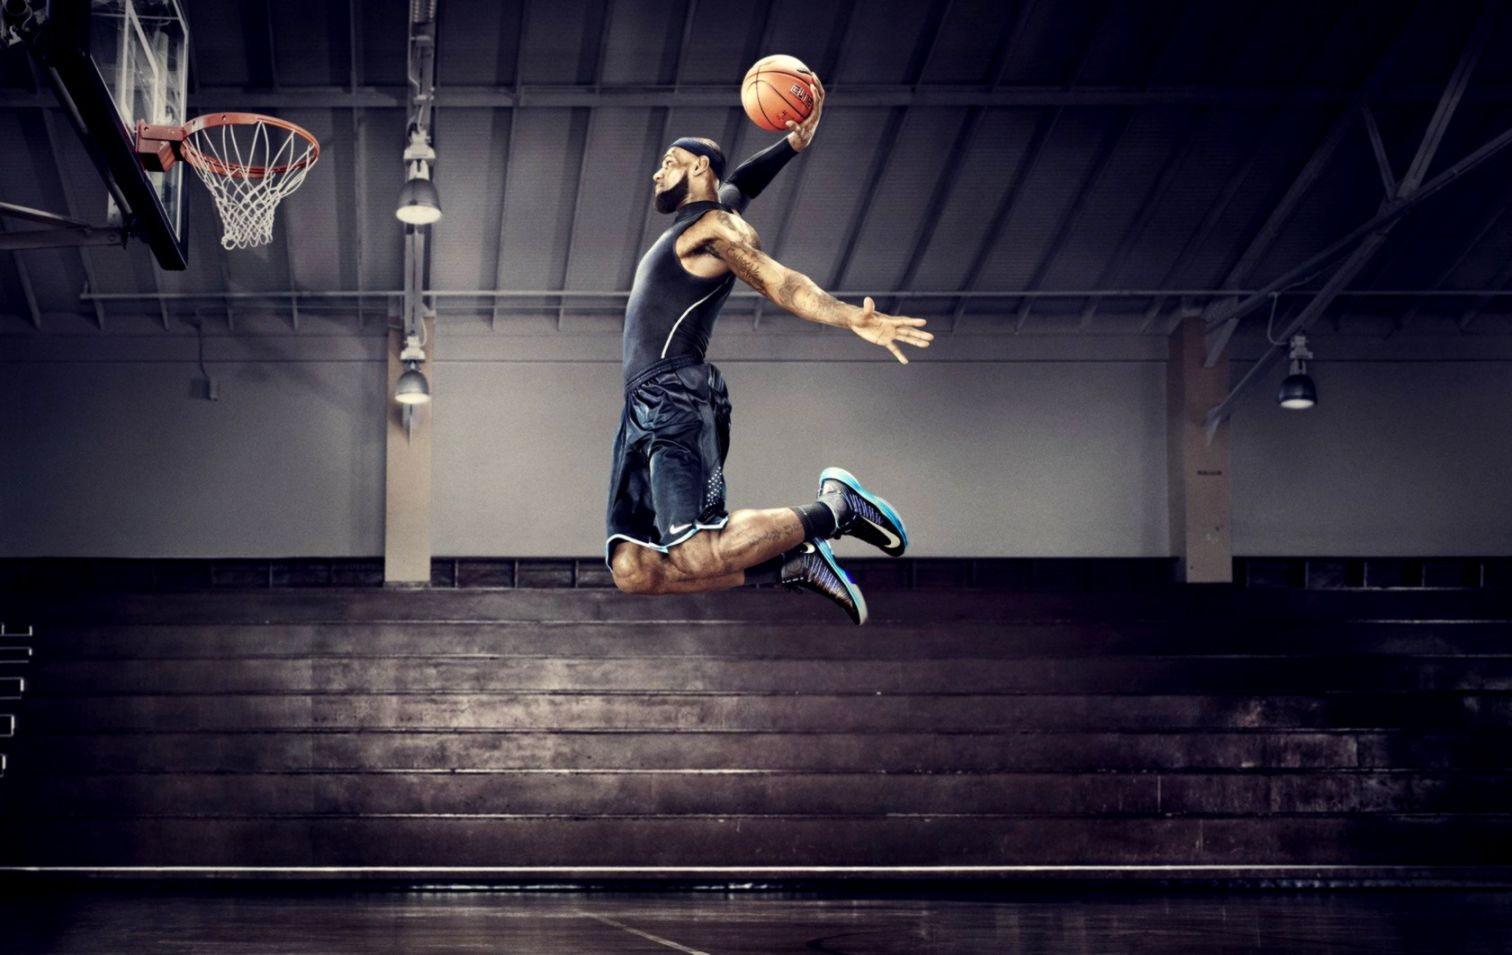 basketball-wallpaper-and-background-imag